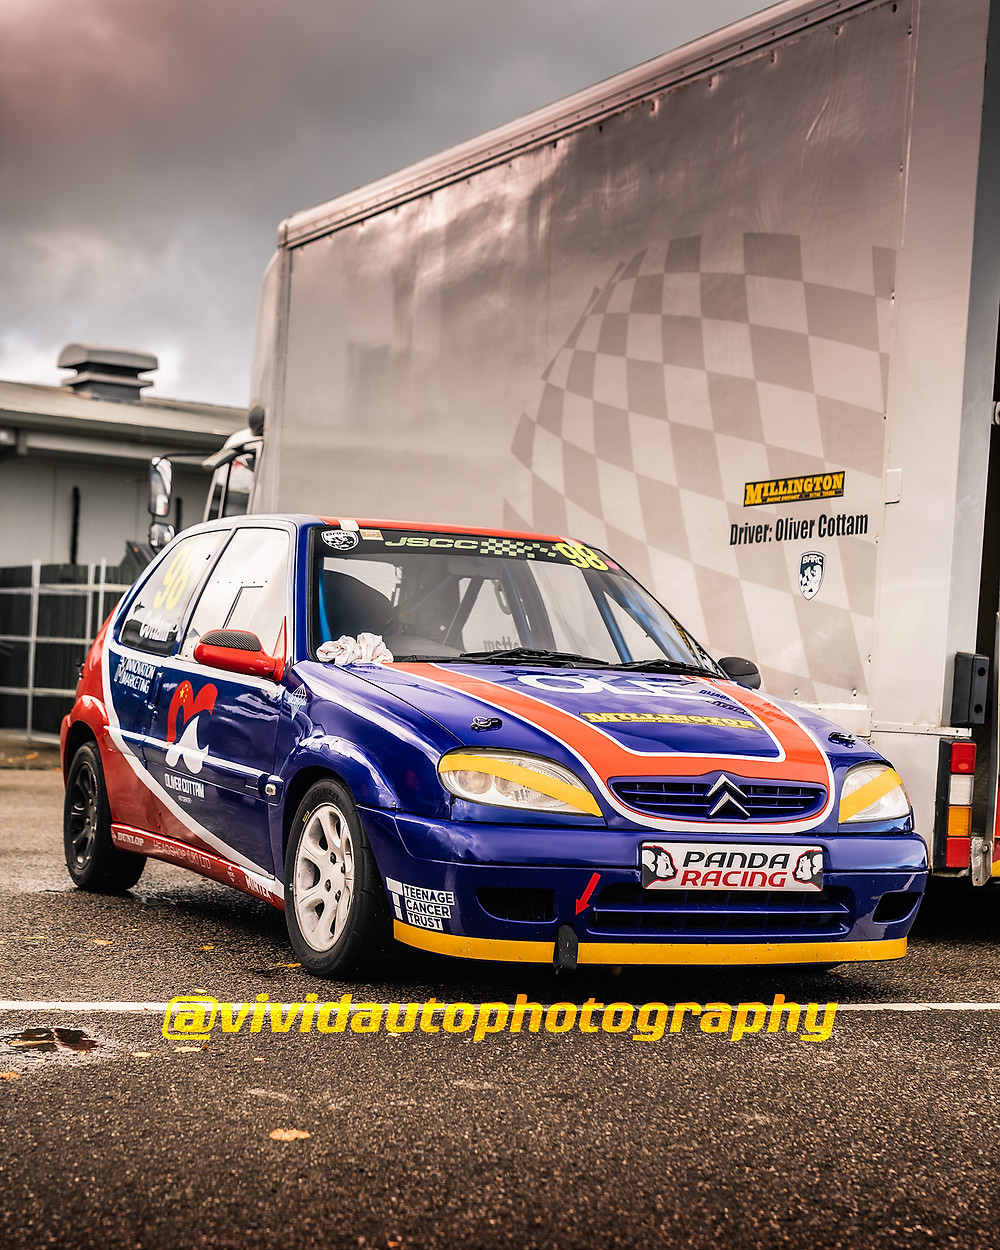 Oliver Cottham | Citroen Saxo | Front three quarters poster